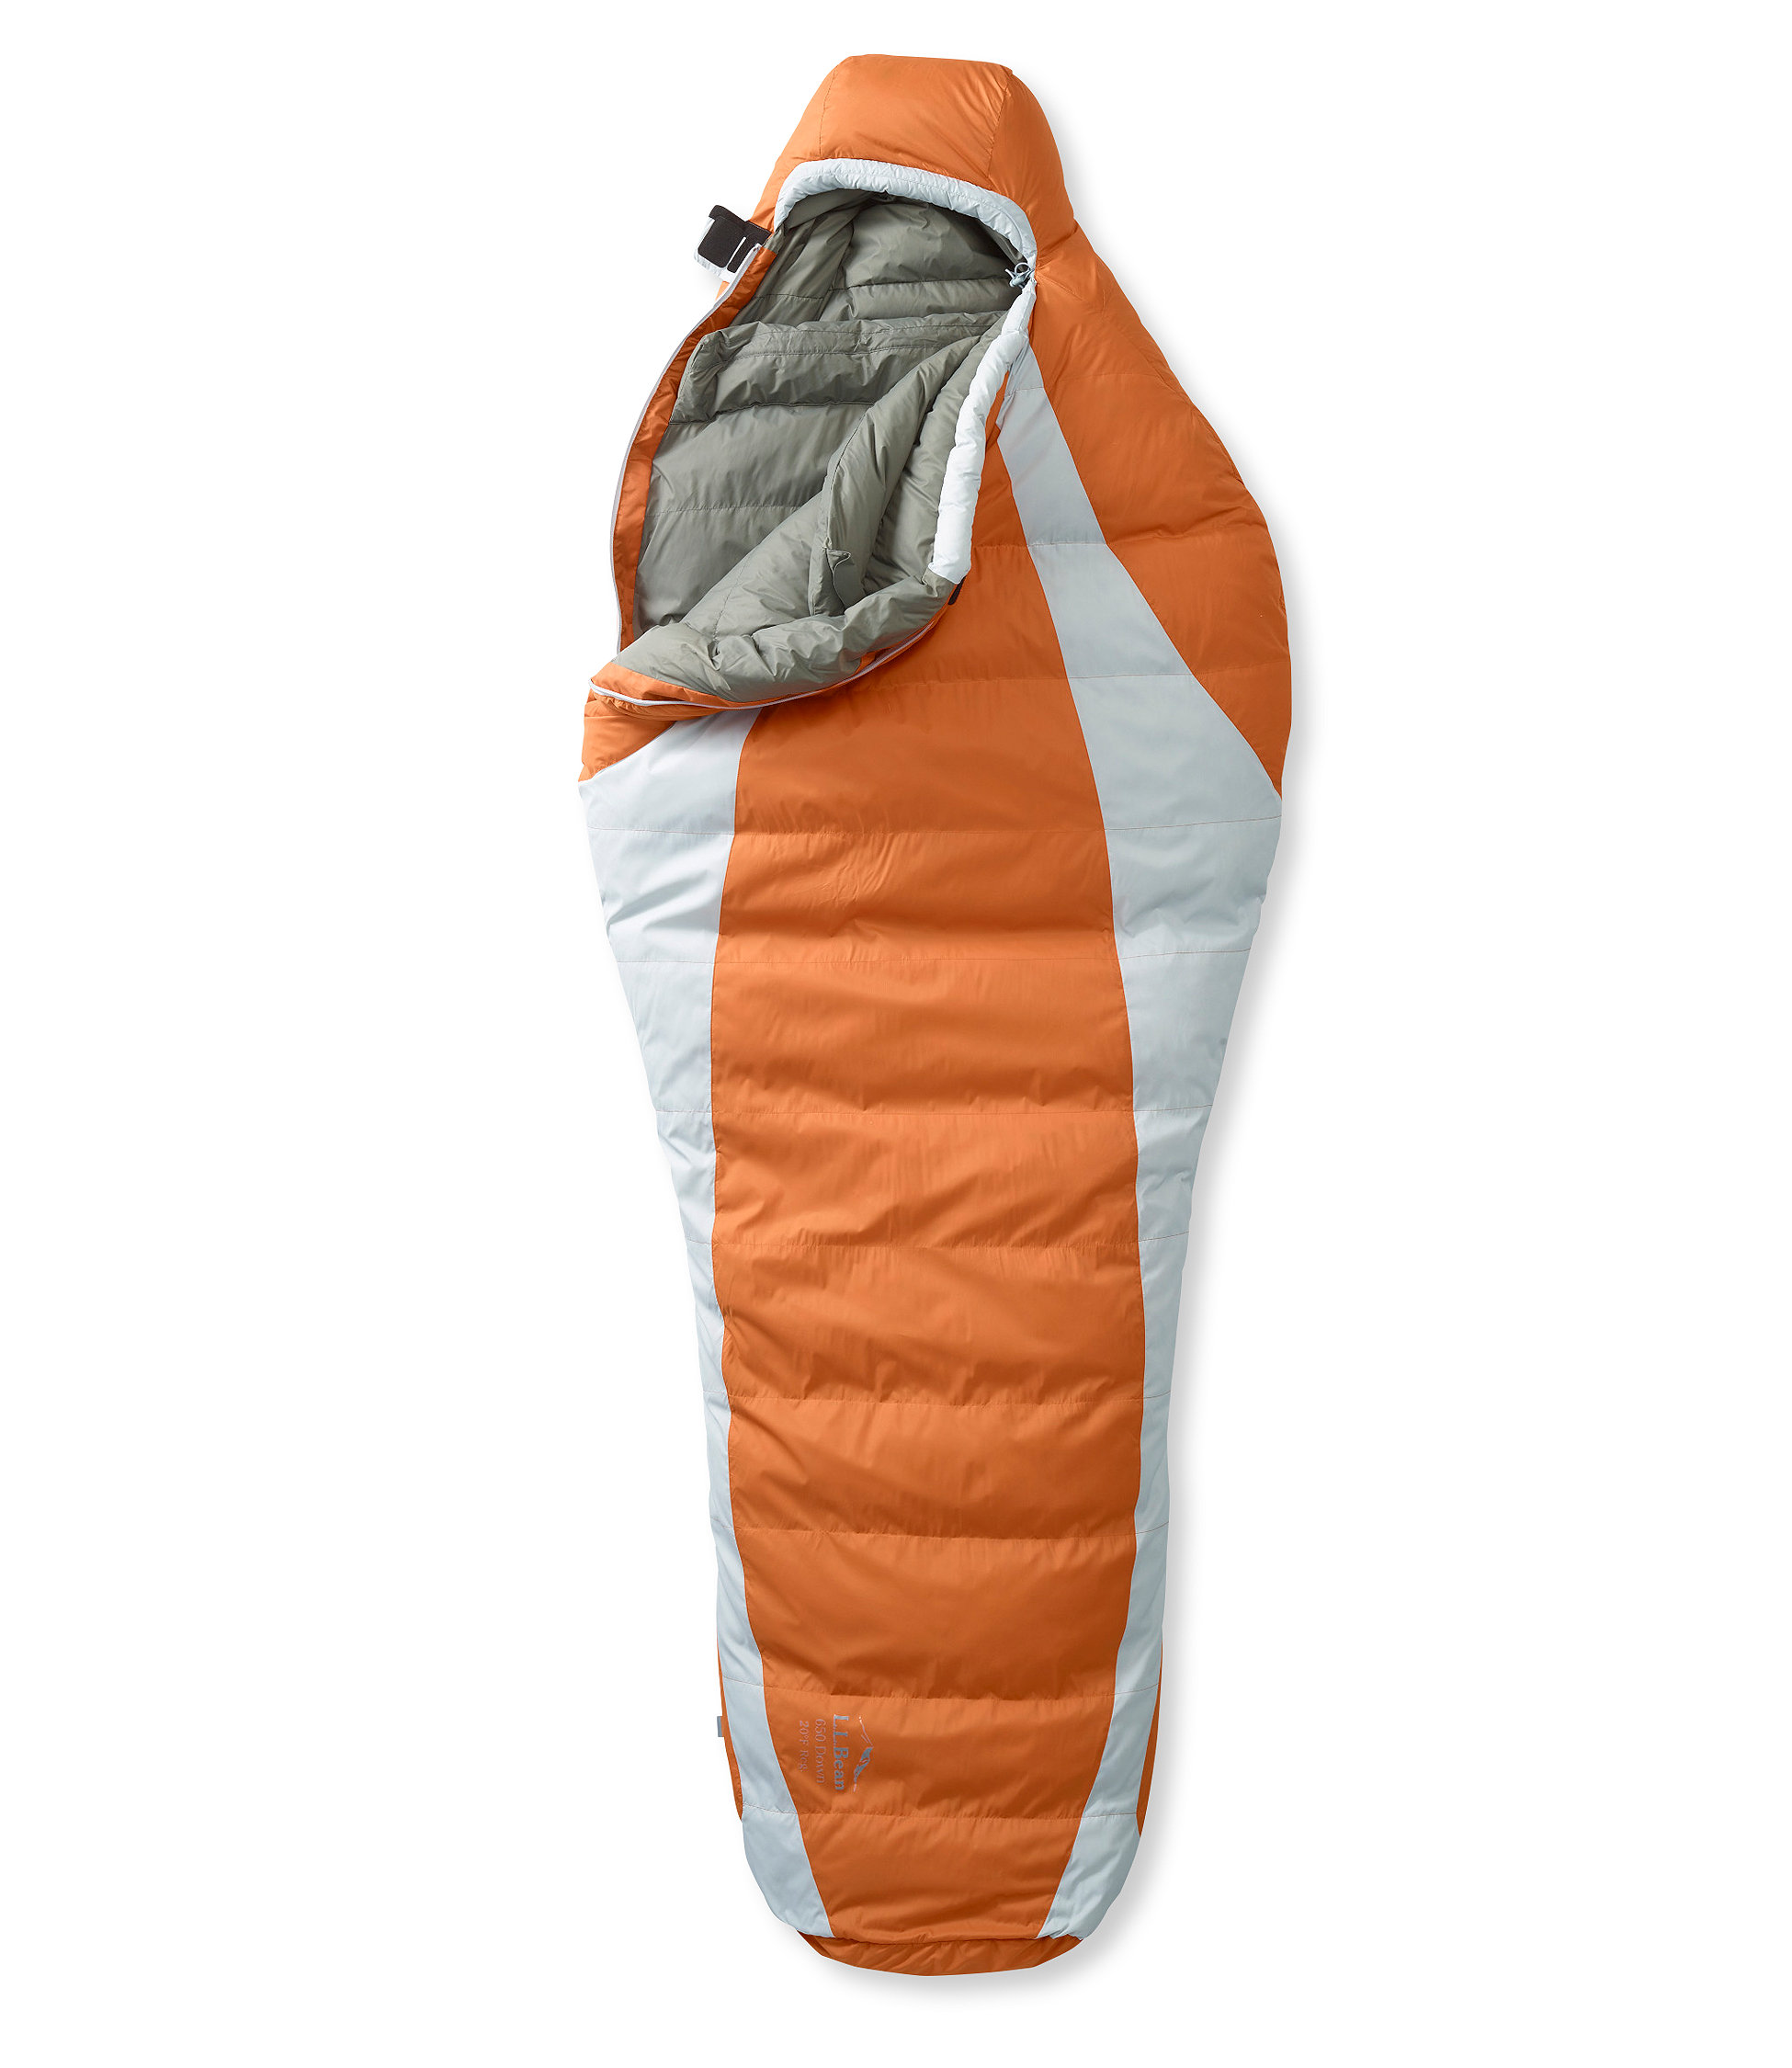 photo: L.L.Bean Down Sleeping Bag with DownTek, Mummy 20° 3-season down sleeping bag